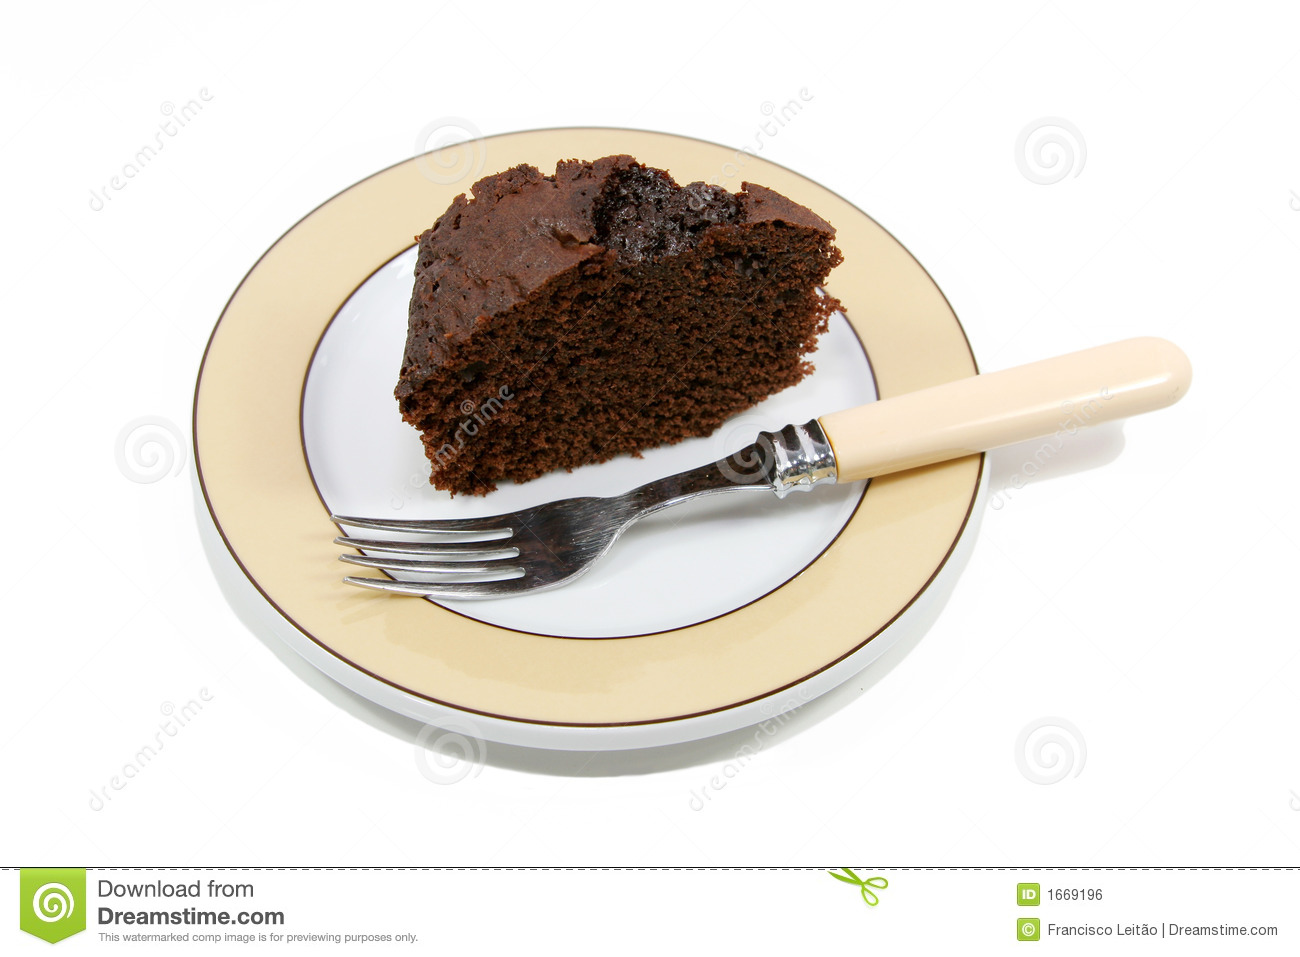 Calories In A Slice Of Chocolate Cake